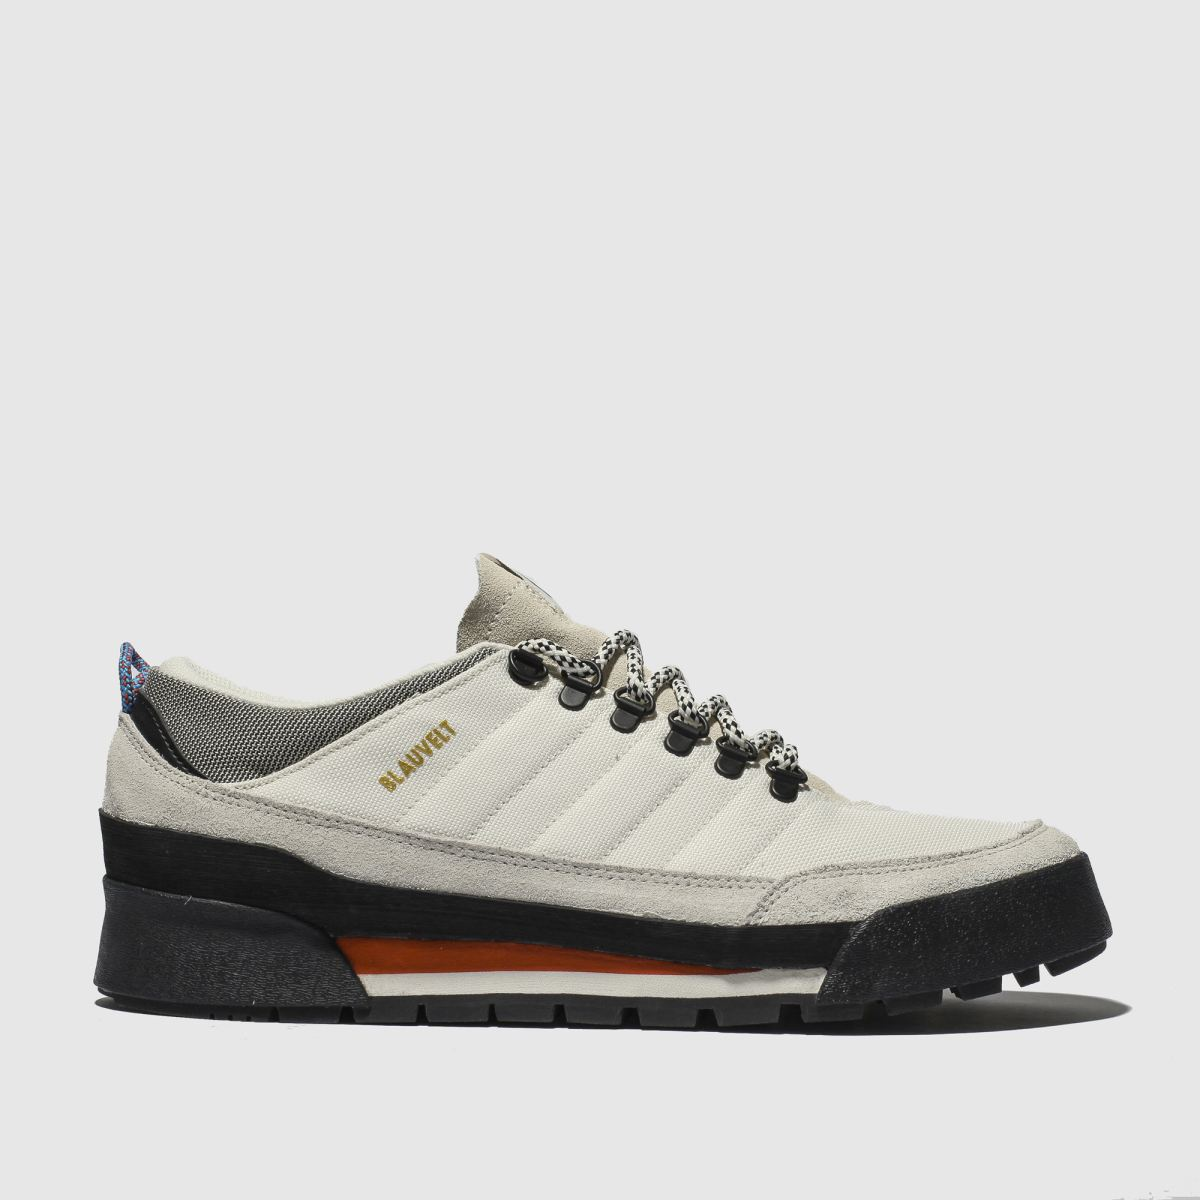 Adidas Skateboarding White Jake Boot 2.0 Low Trainers